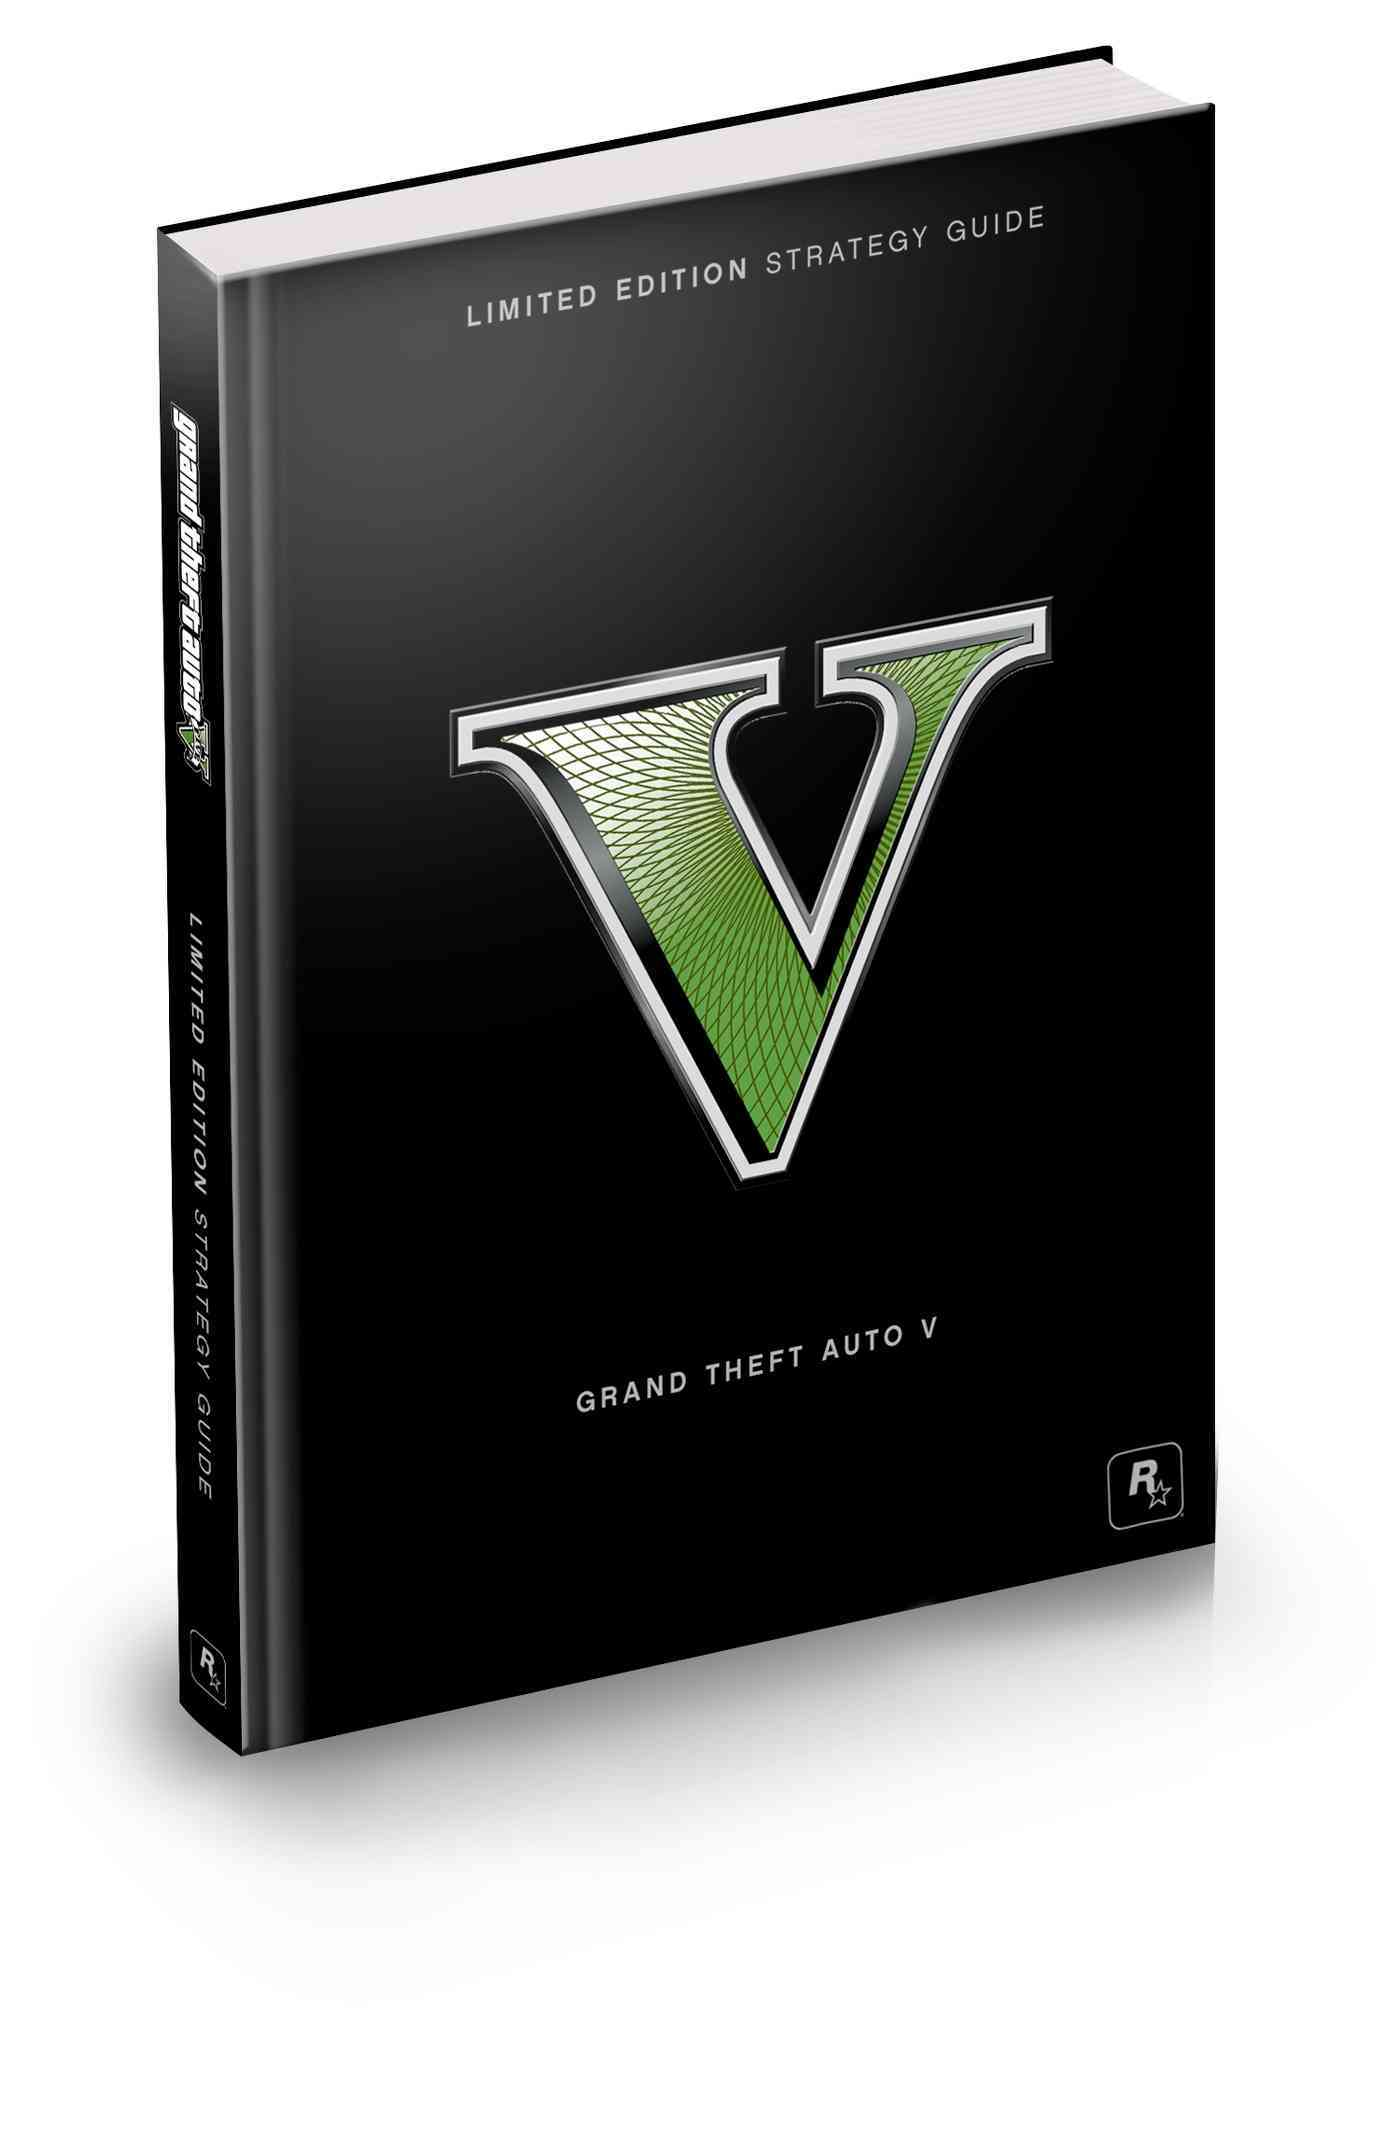 Grand Theft Auto V Limited Edition Strategy Guide (Hardcover)